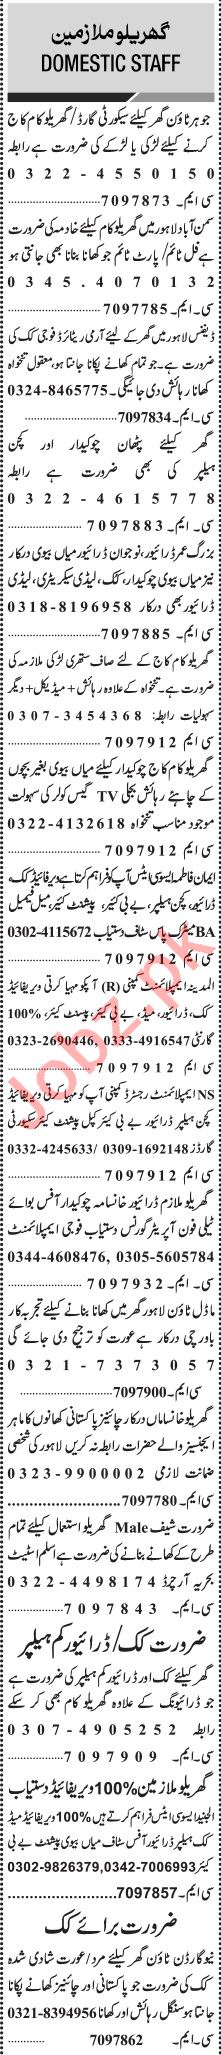 Jang Sunday Classified Ads 11 April 2021 for House Staff